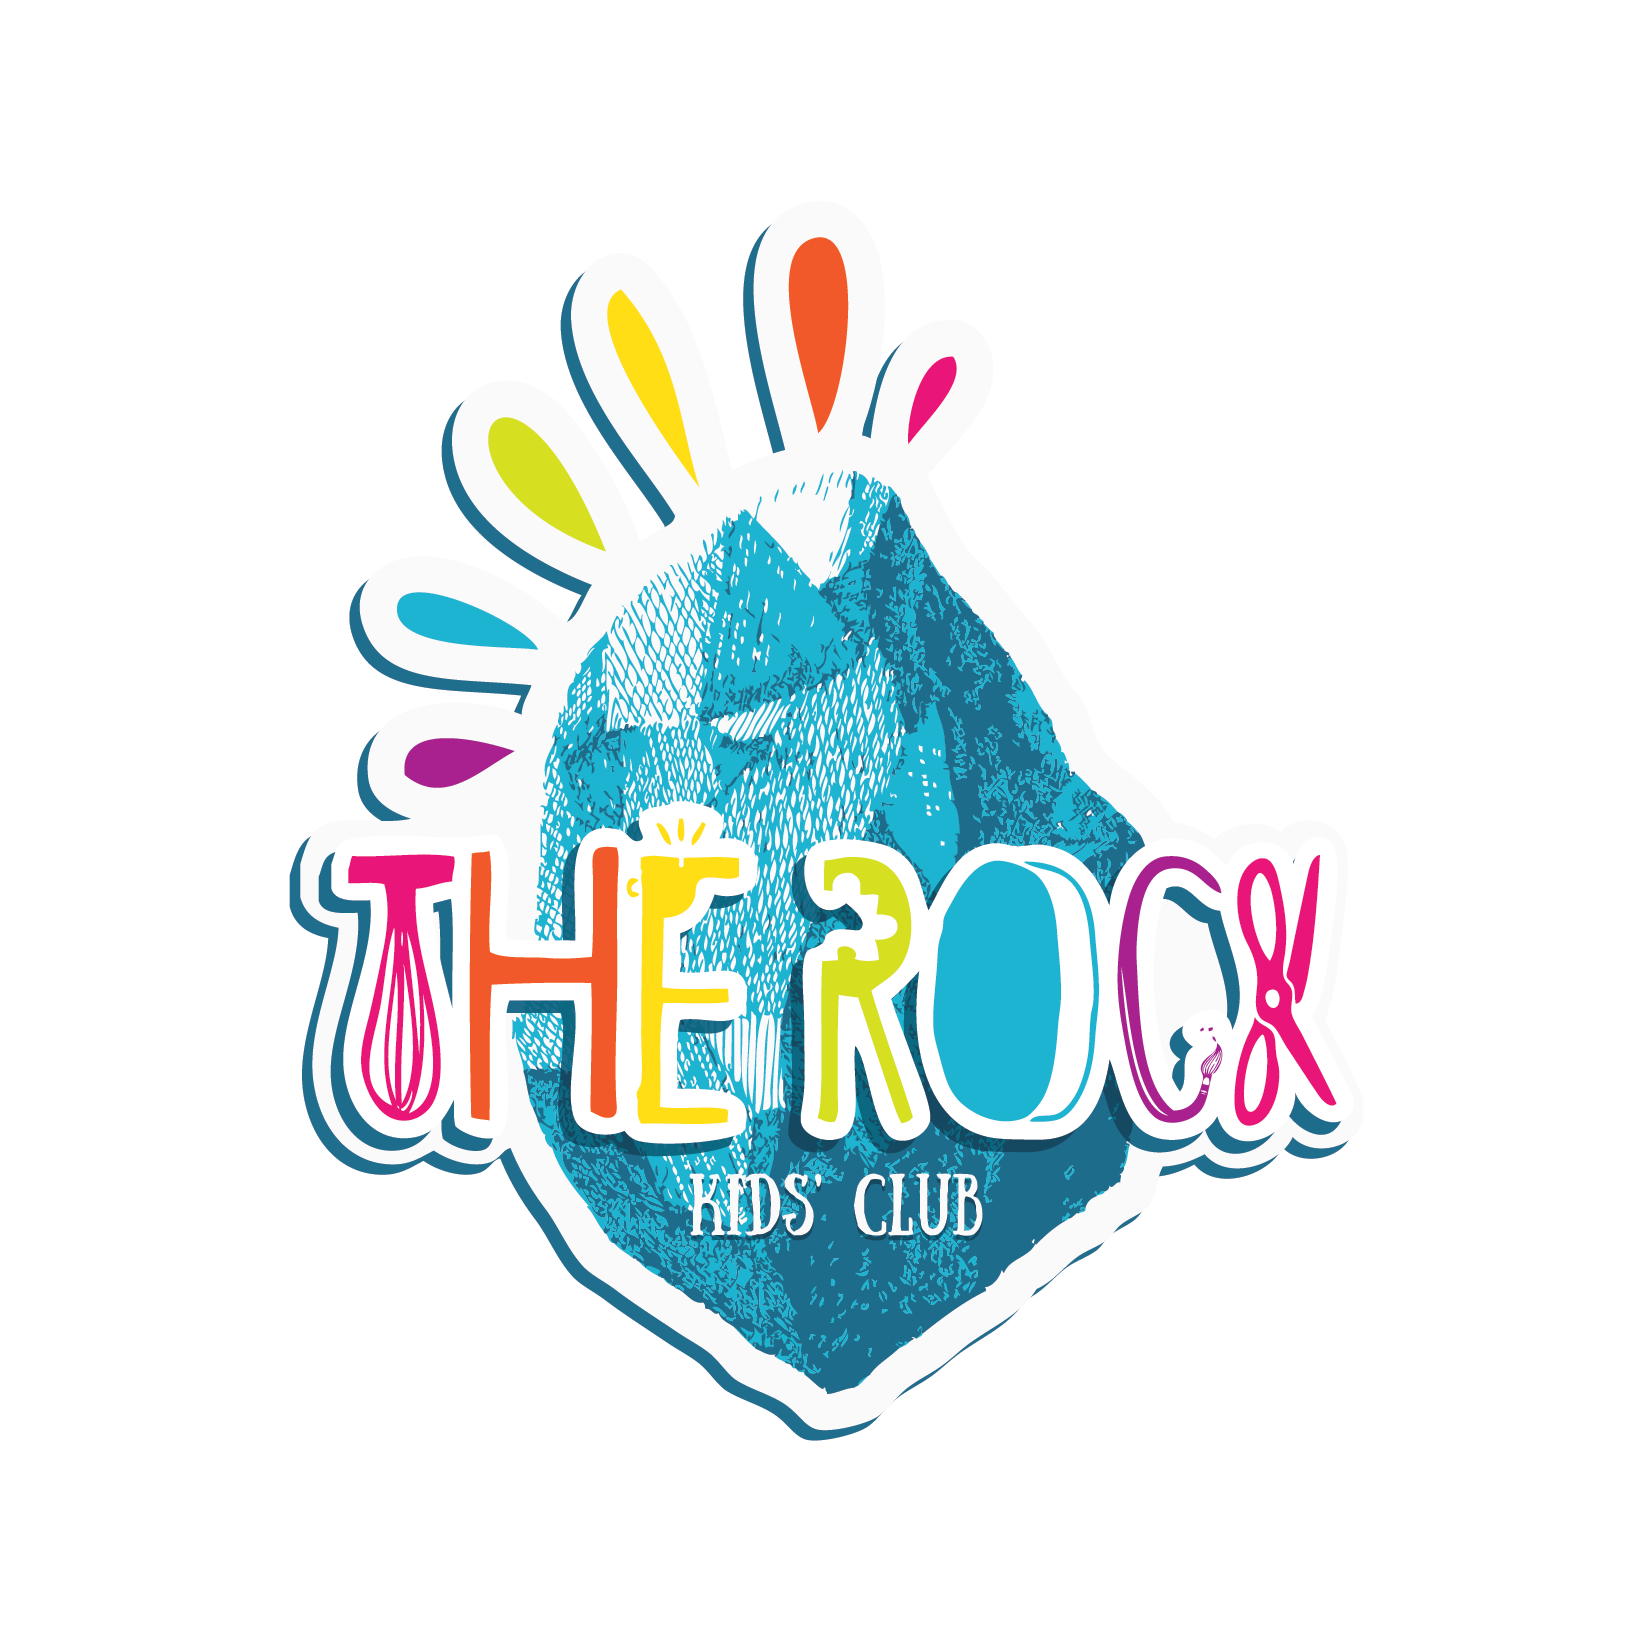 The Rock - Children's Club